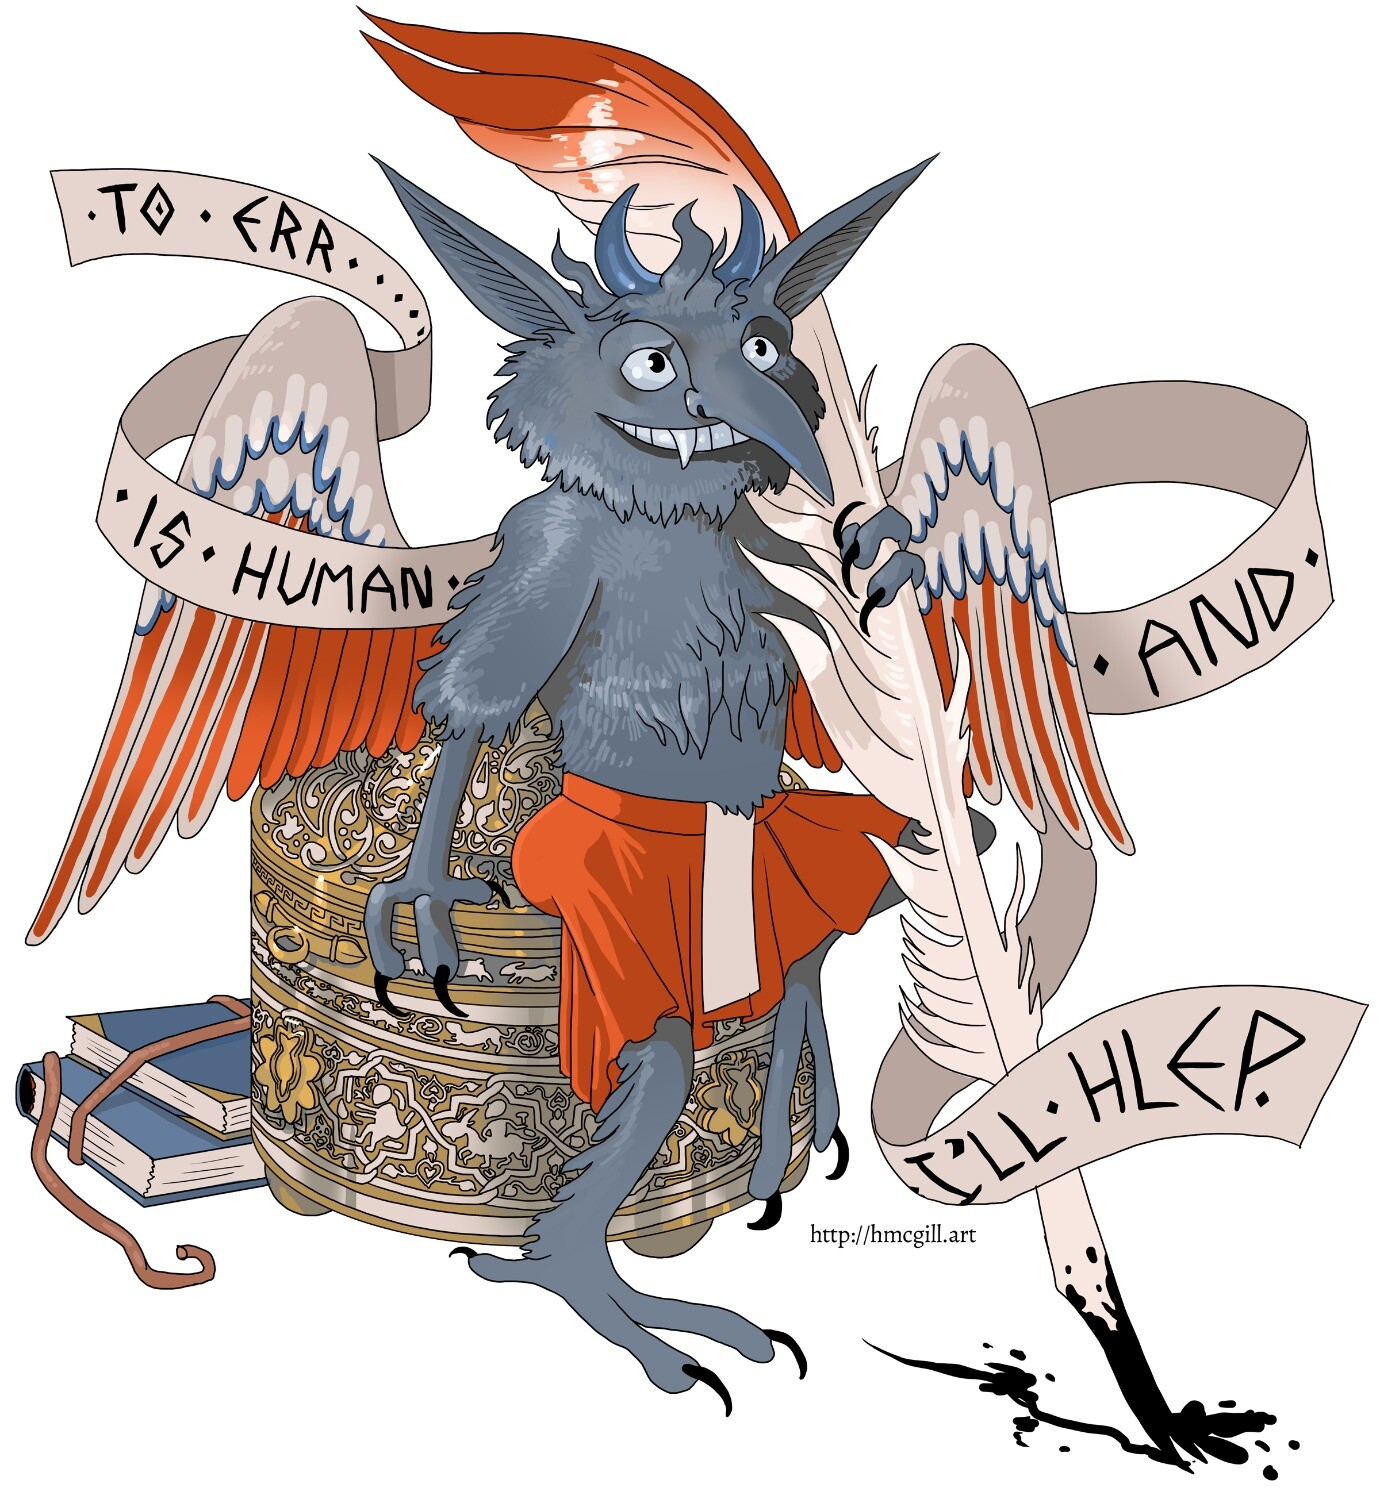 """Digital artwork of Titivillus, a blue demon small enough to perch on an inkwell. The inkwell is a fancy brass affair from Iran, decorated in zodiac symbols. Titivillus holds a quill and its tiny books are stacked behind the inkwell. A banner twining around Titivillus bears the message: """"To err is human, and I'll hlep!"""" [sic]"""